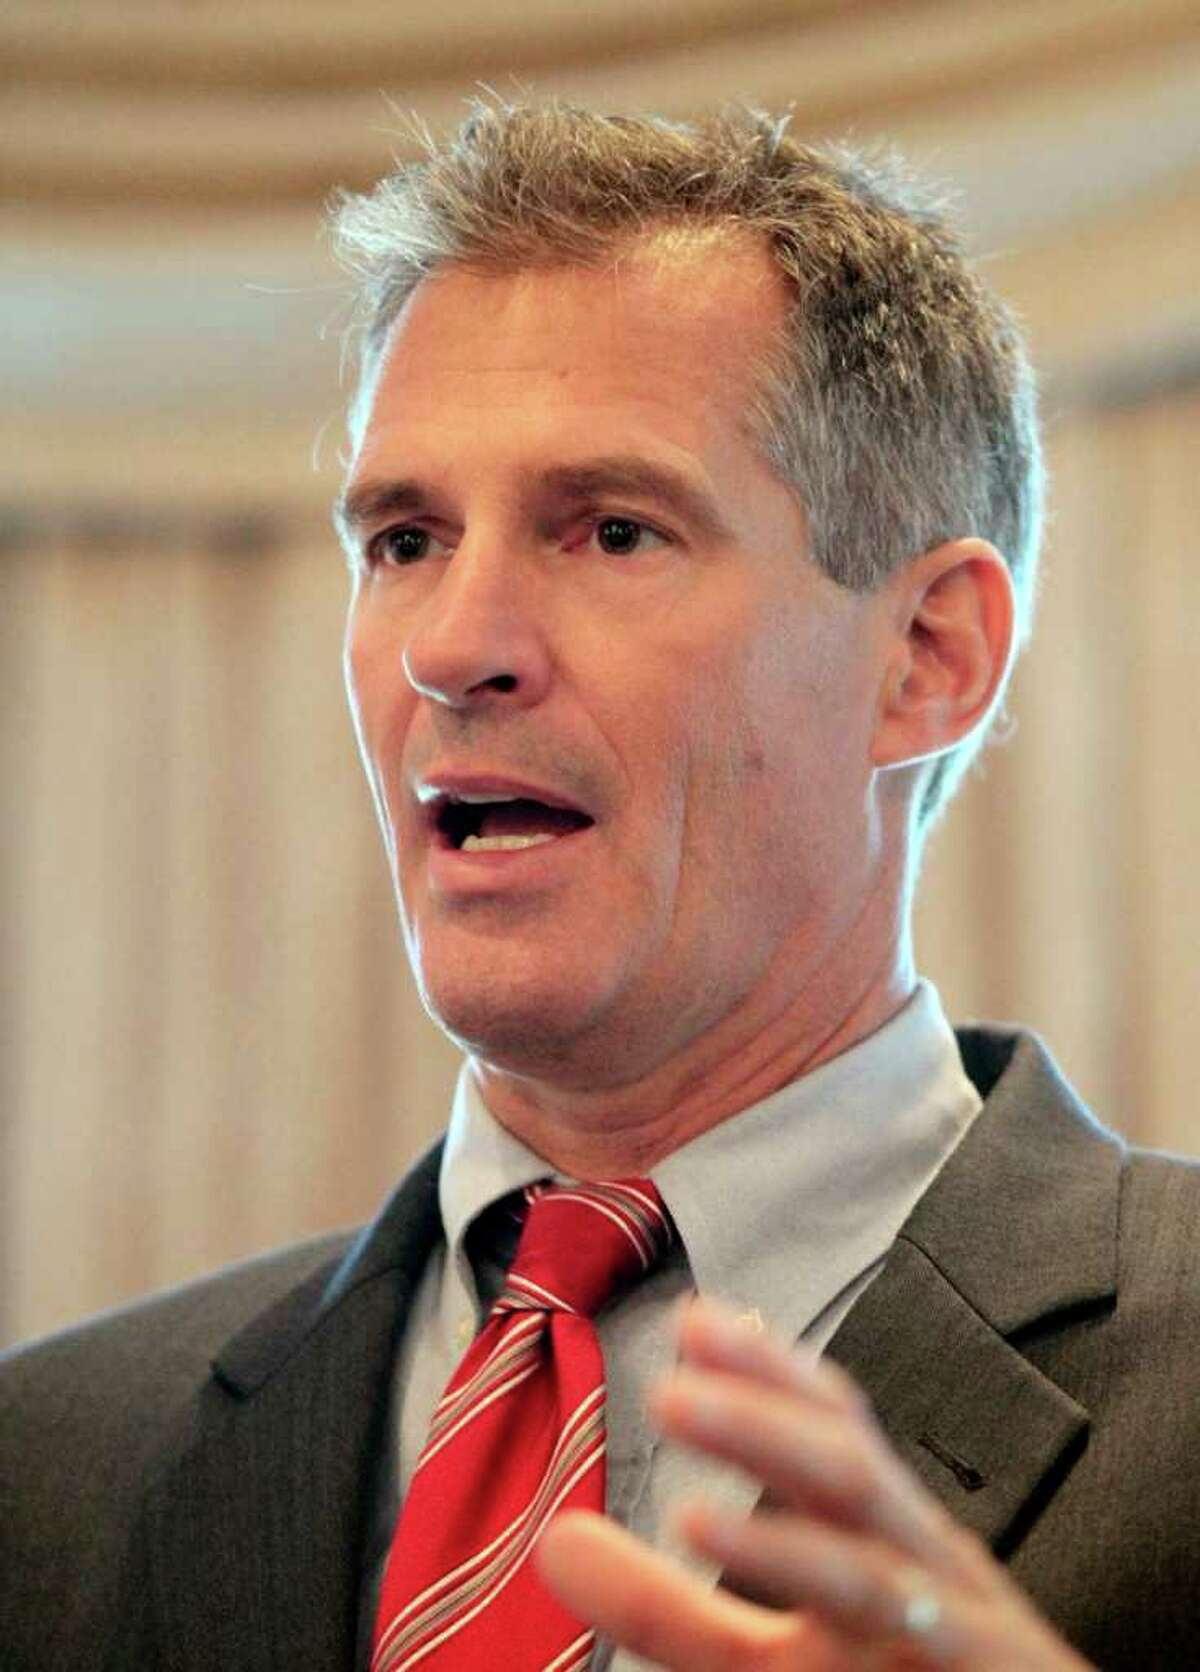 U.S. Sen. Scott Brown, R-Mass., addresses the New England Associated Press News Executives Association in Chelmsford, Mass., Sept. 11. (AP Photo/Winslow Townson)